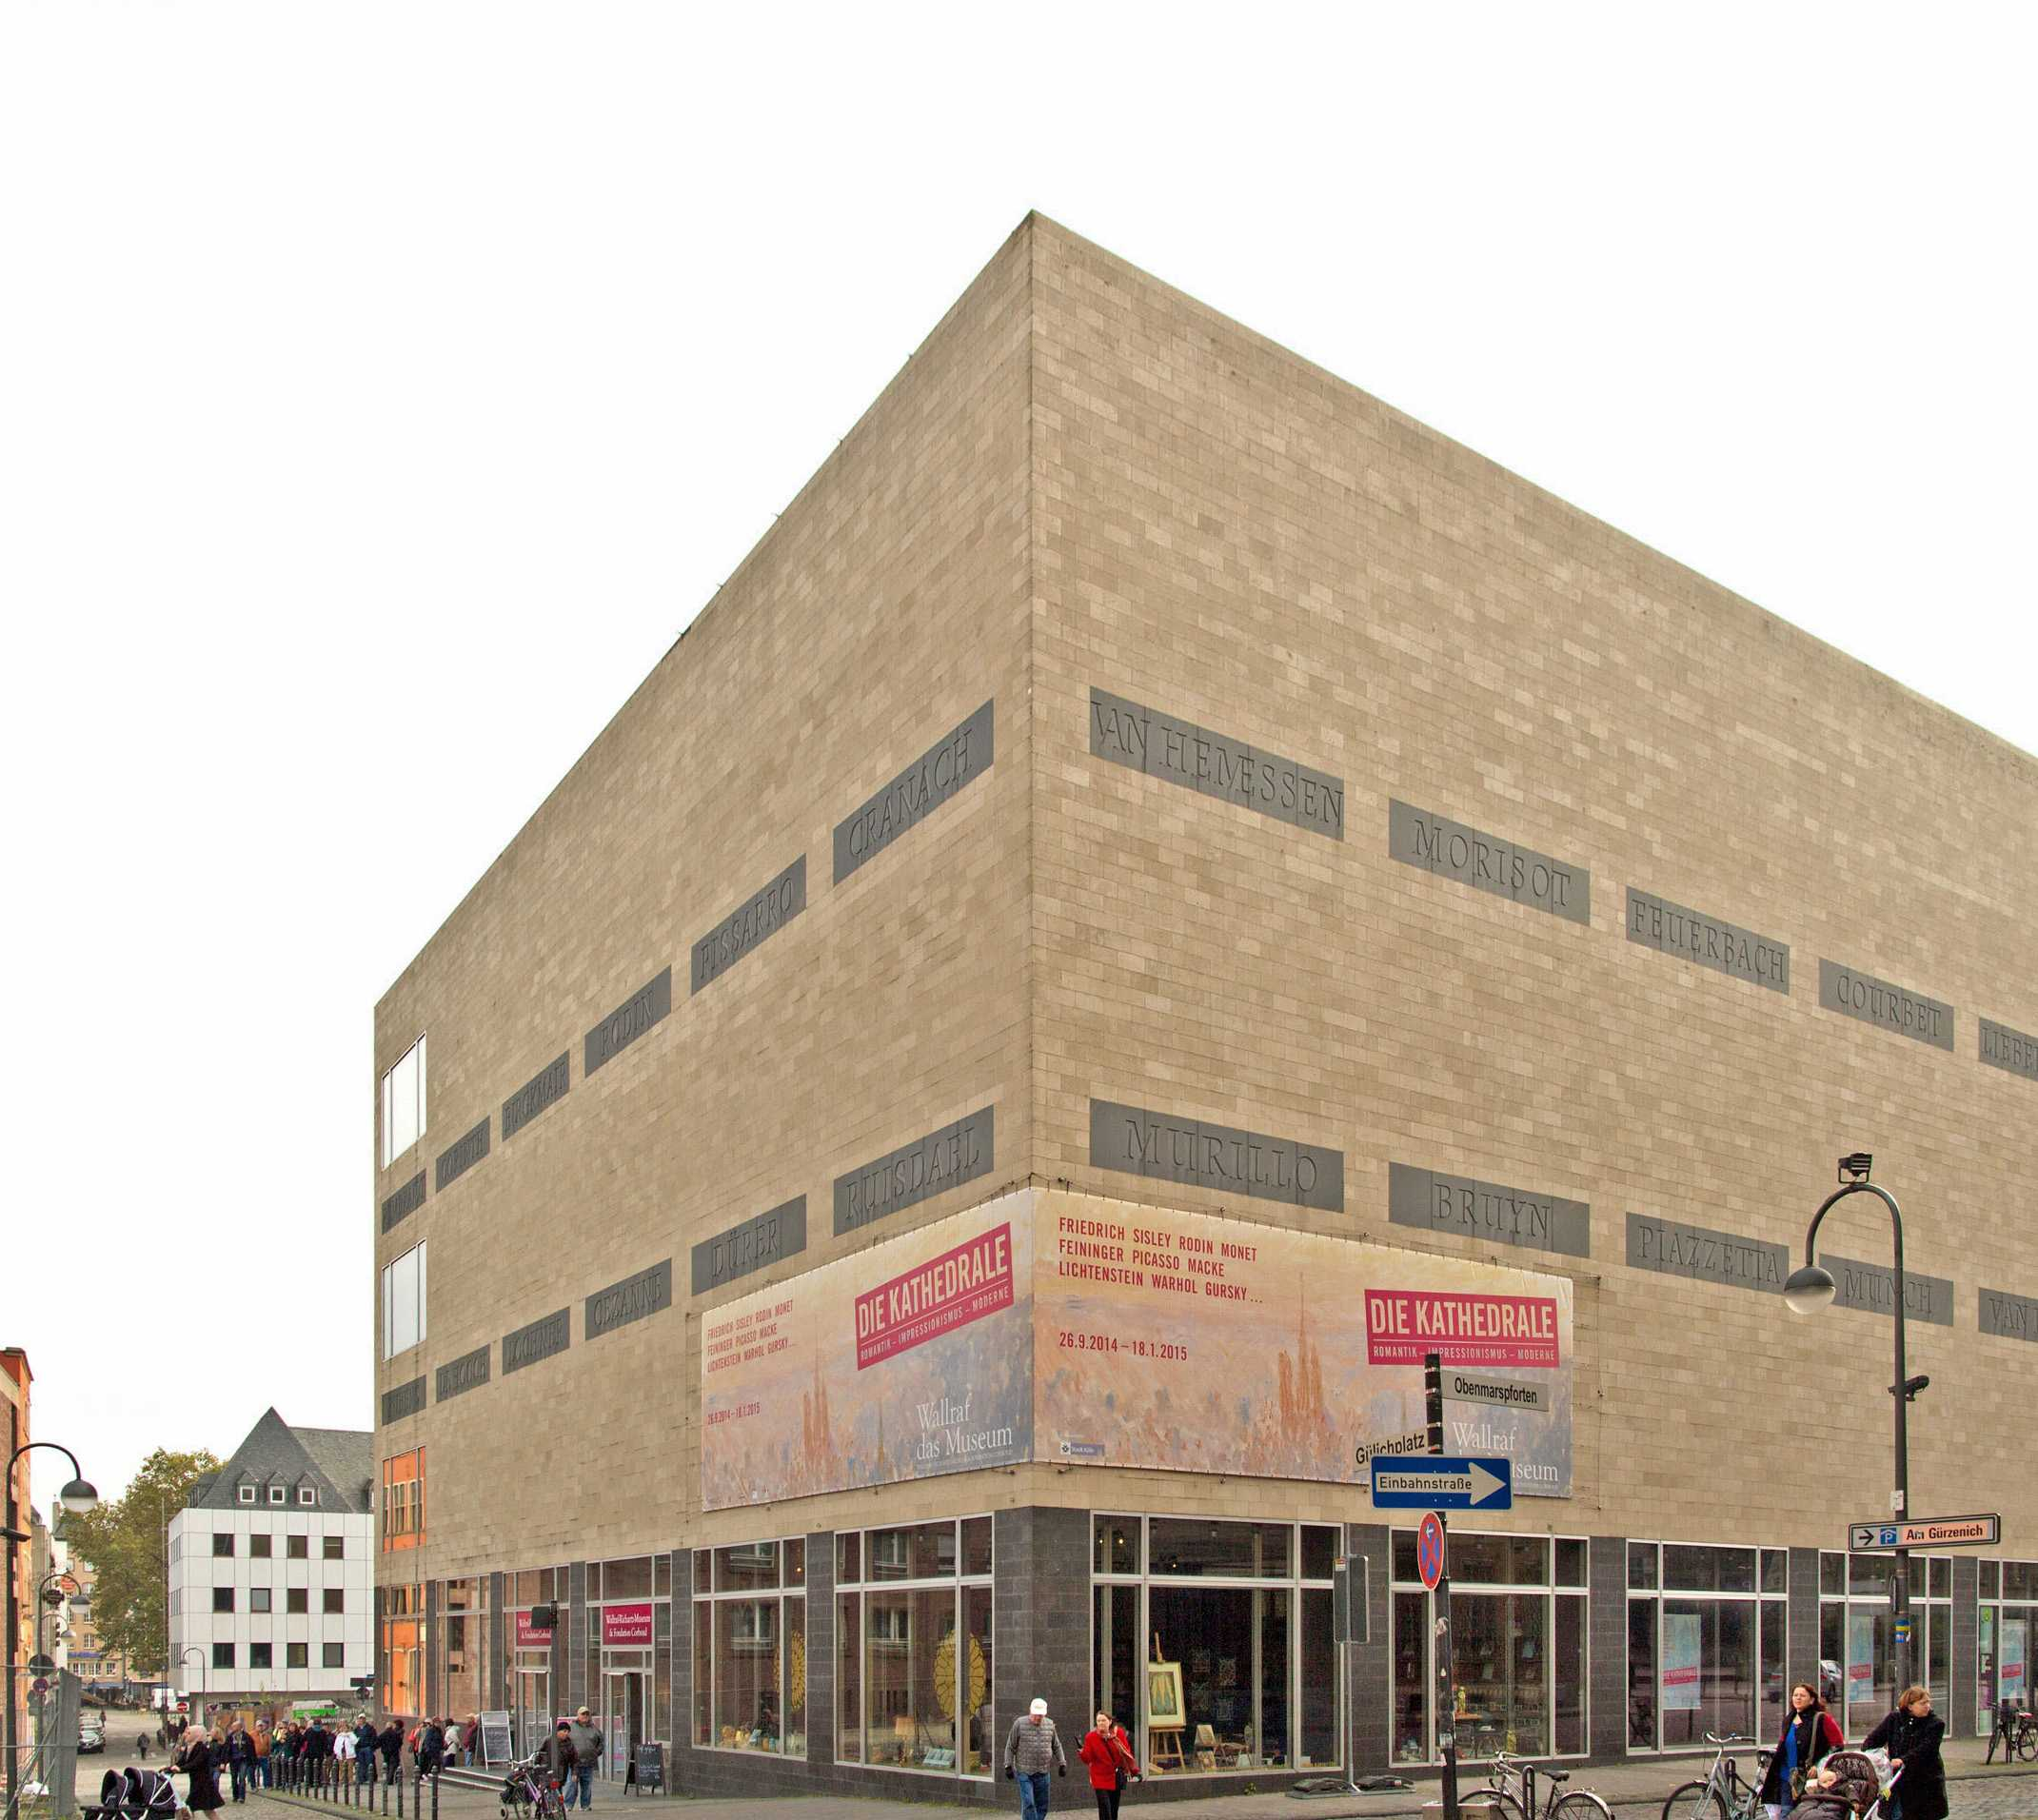 Laurens Lamberty / Wallraf-Richartz-Museum & Foundation Corboud/Wikimedia CC BY-SA 3.0 https://creativecommons.org/licenses/by-sa/3.0/deed.de